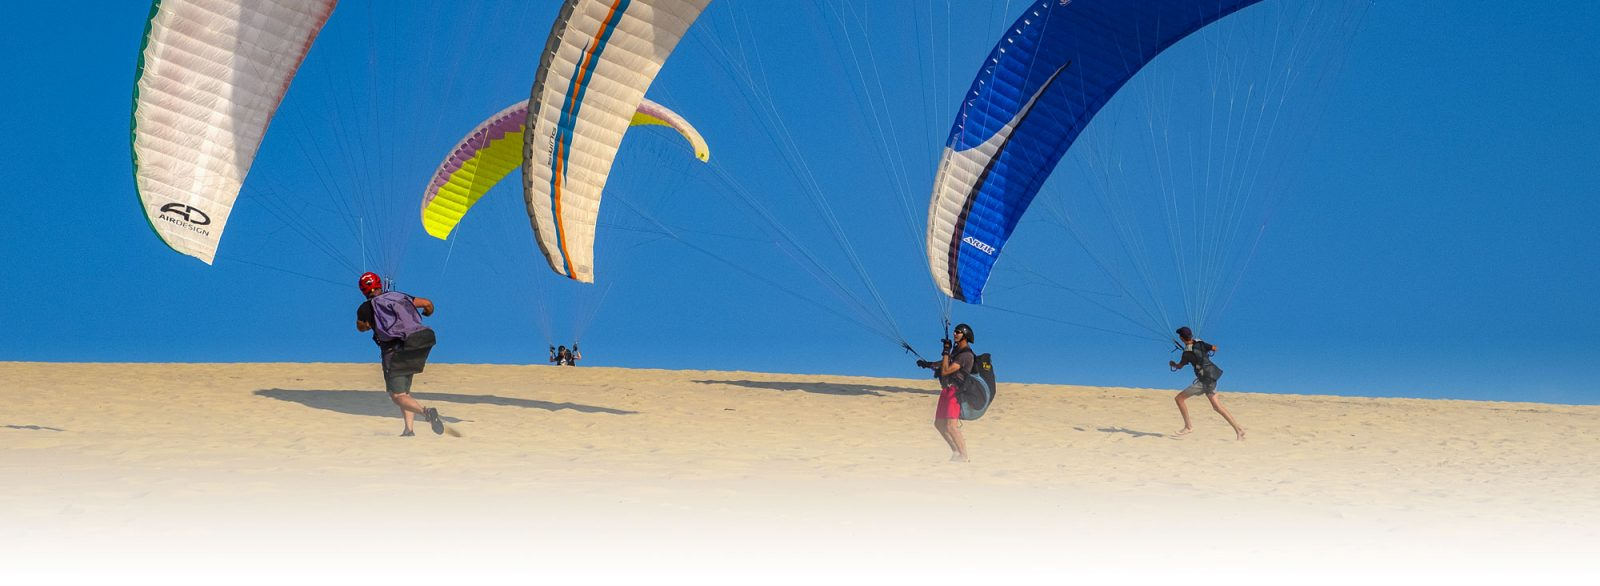 Biplace parapente ascendances